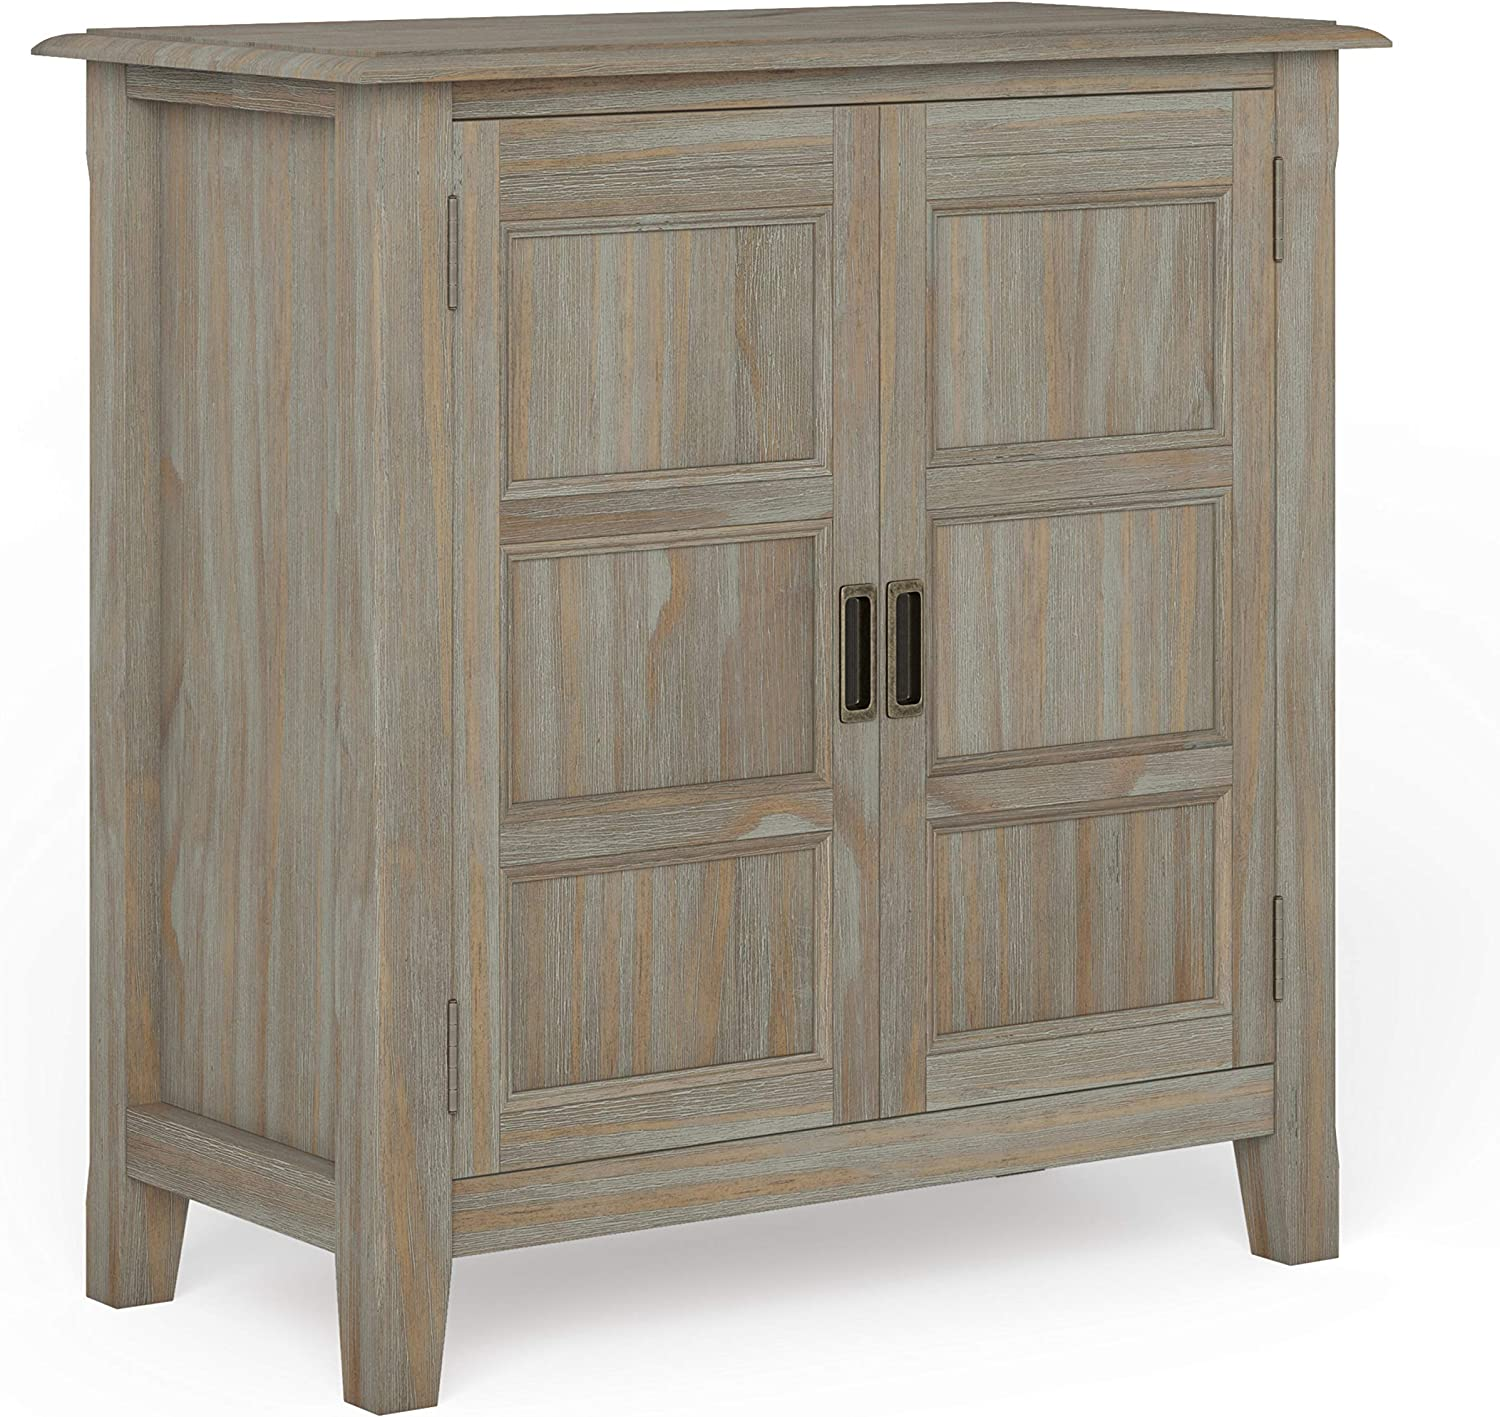 SIMPLIHOME Burlington SOLID WOOD 30 inch Wide Traditional Low Storage Cabinet in Distressed Grey, with 2 Doors, 2 Adjustable Shelves